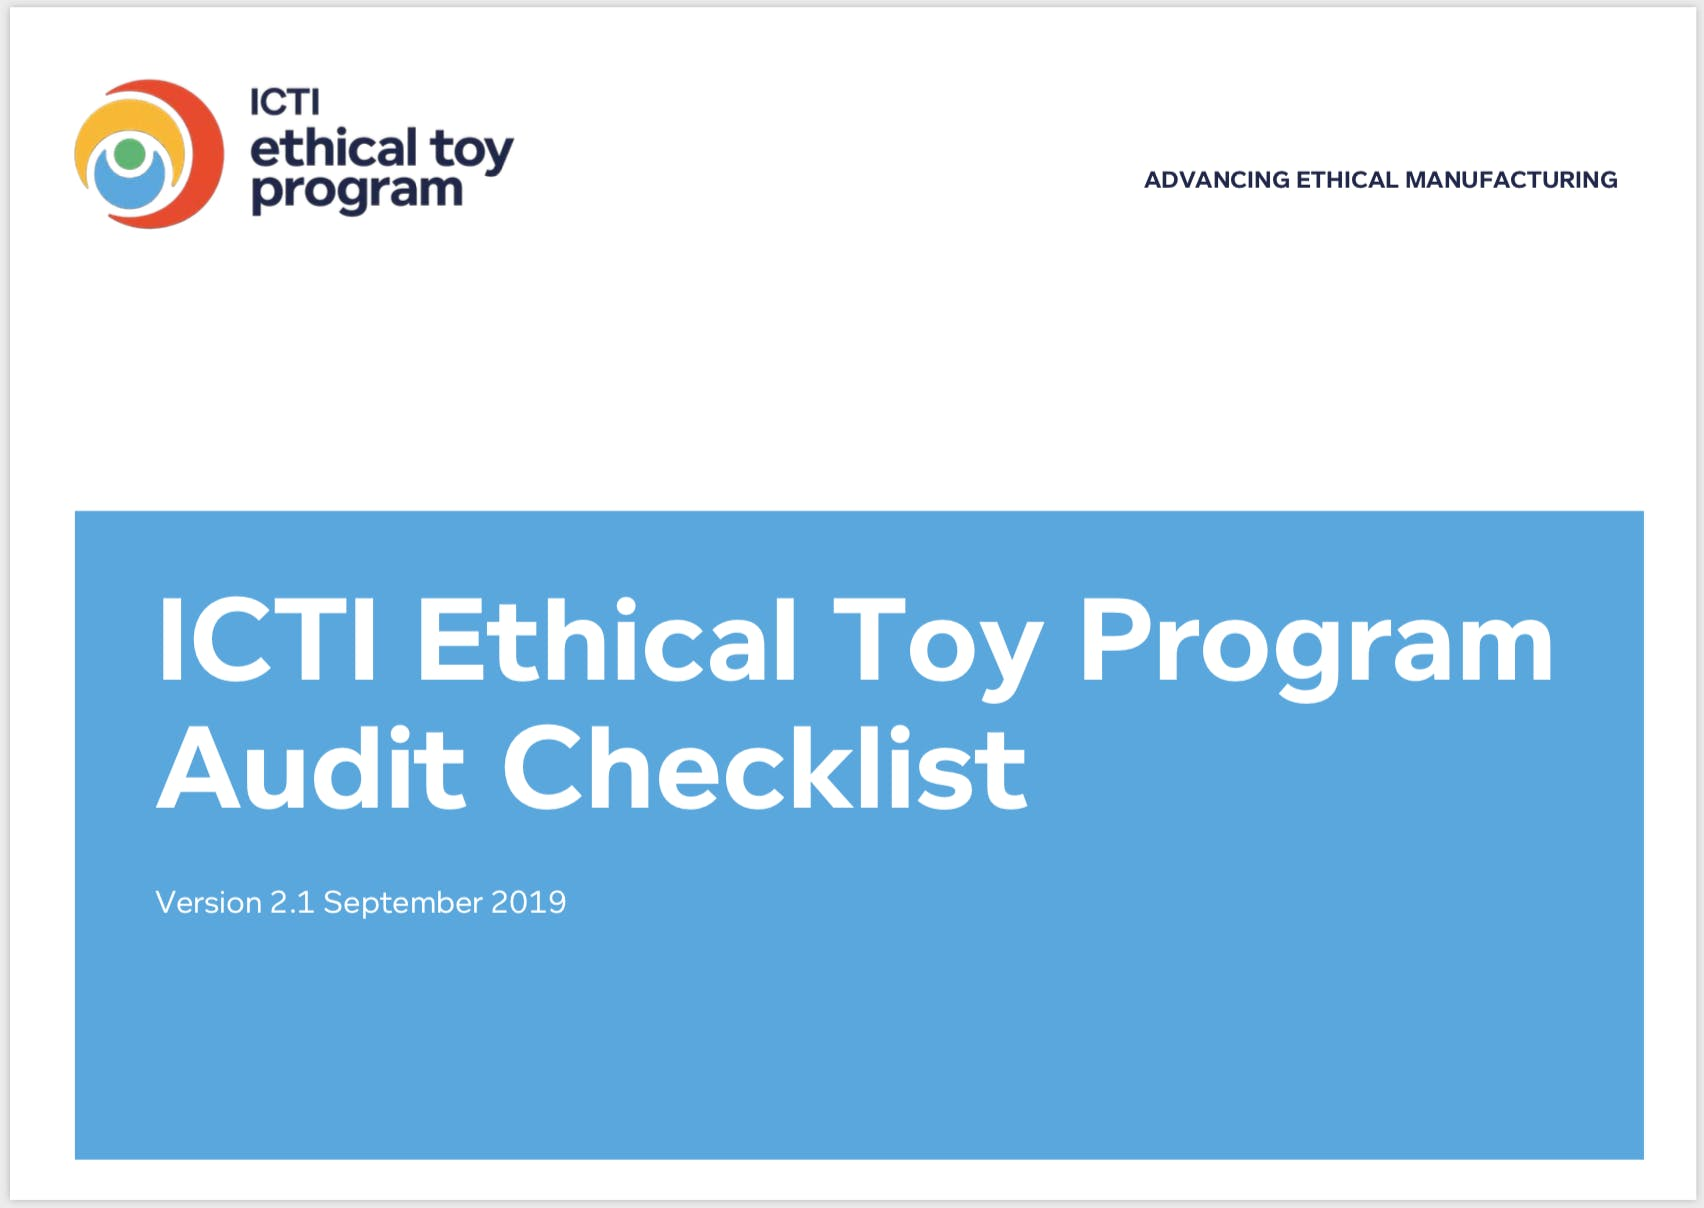 ICTI Ethical Toy Proragm latest Checklist